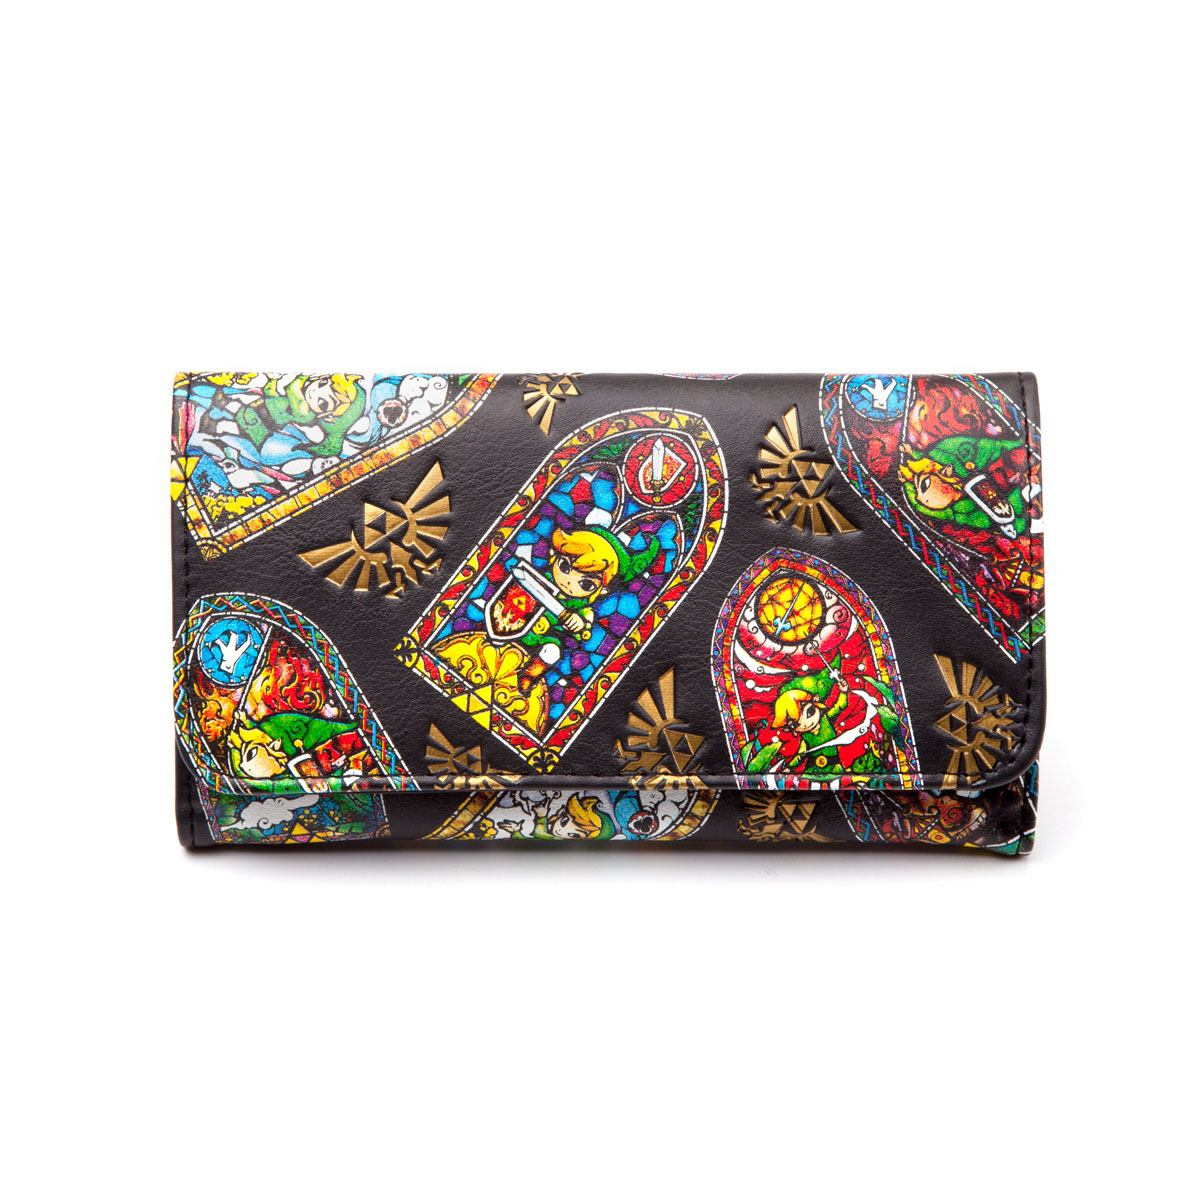 Nintendo Zelda Windows, Folded Wallet (Zwart)